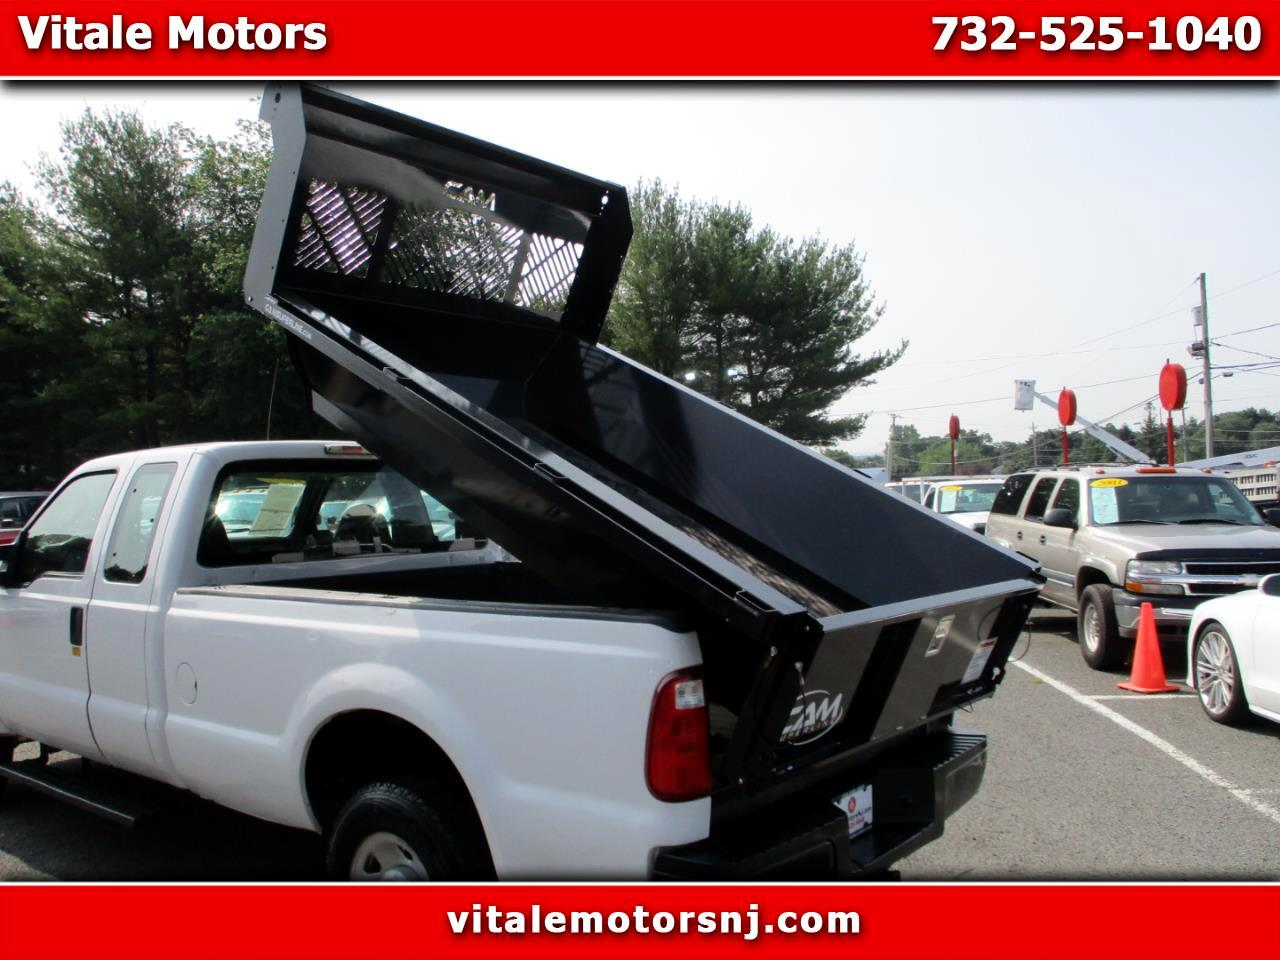 2009 Ford F-250 SD DUMP TRUCK 59K MILES 4X4 SUPERCAB